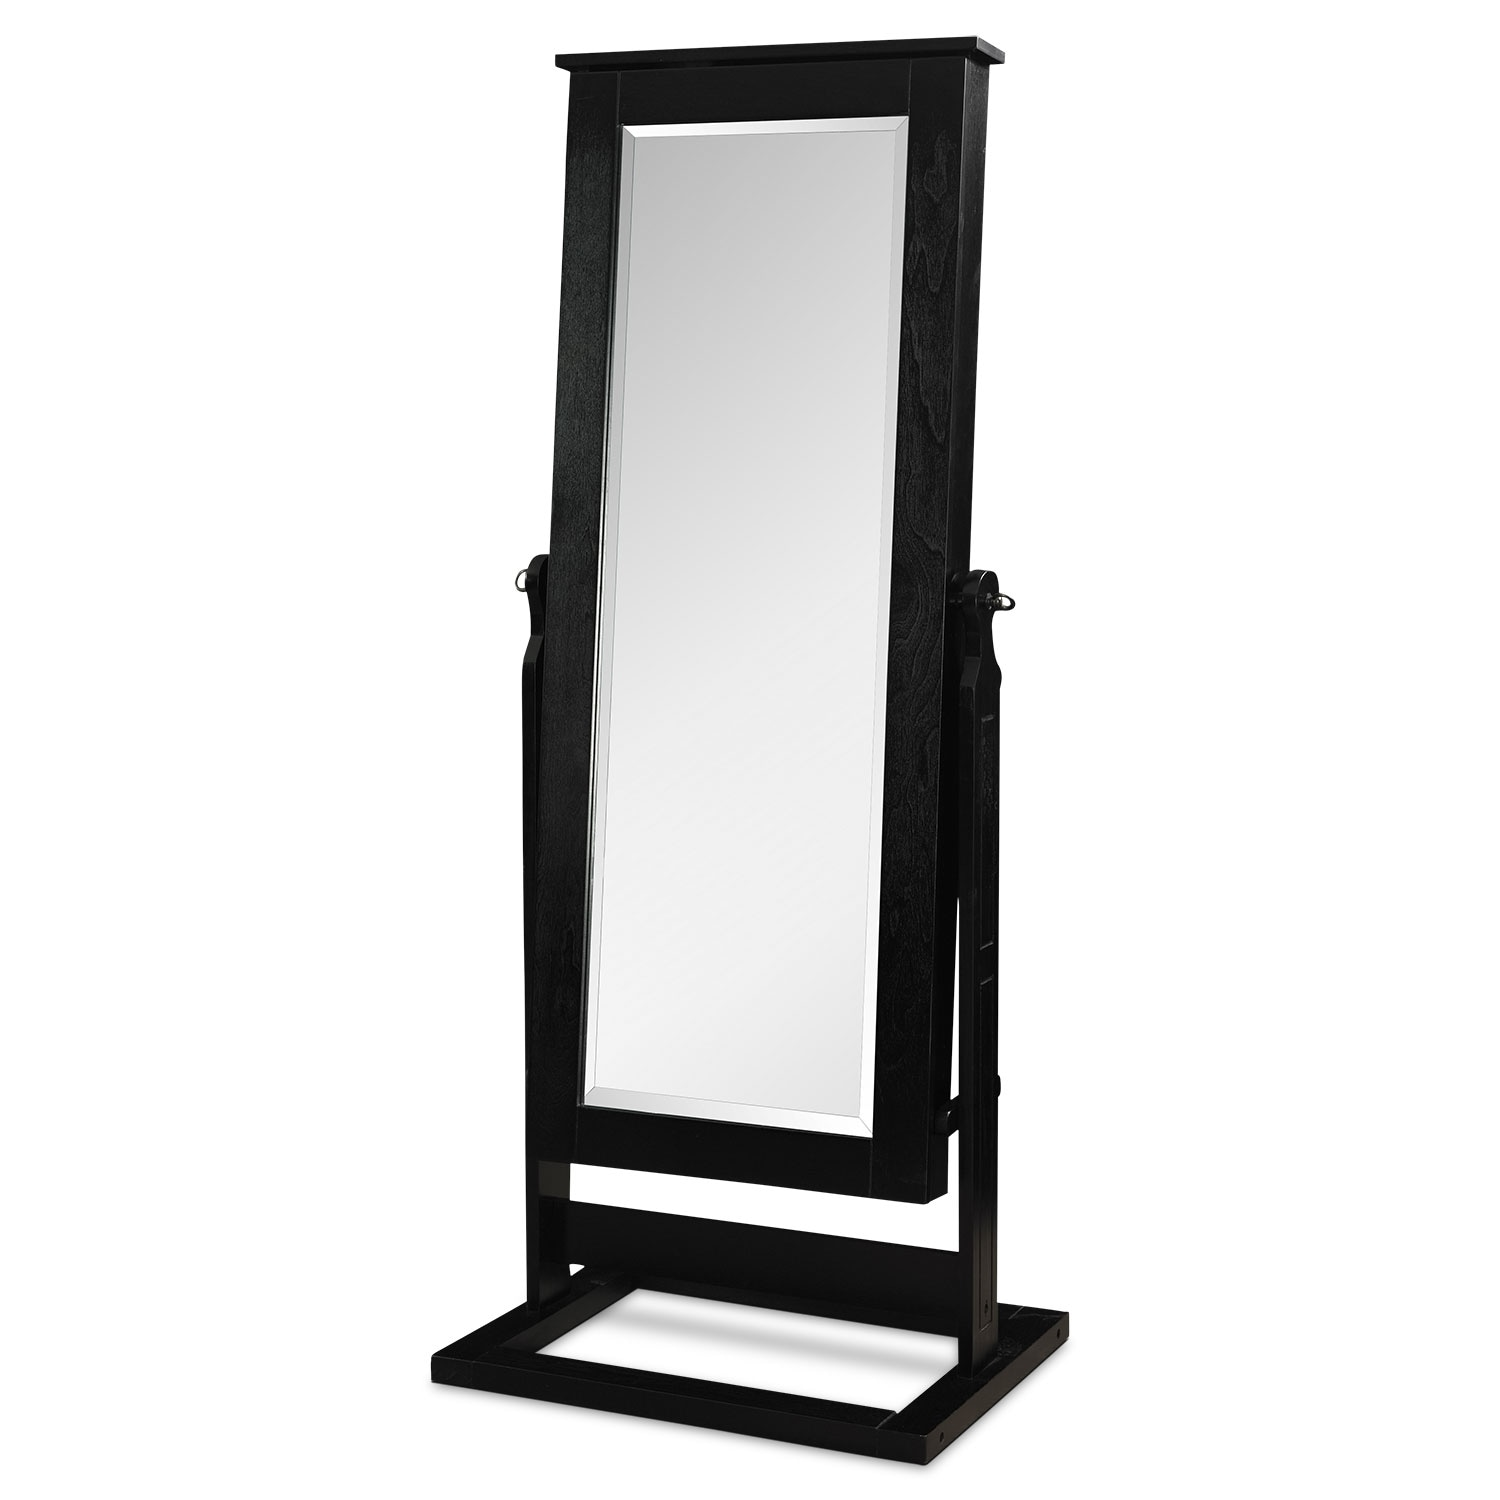 Bedroom Furniture - Perrie Cheval Storage Mirror - Black